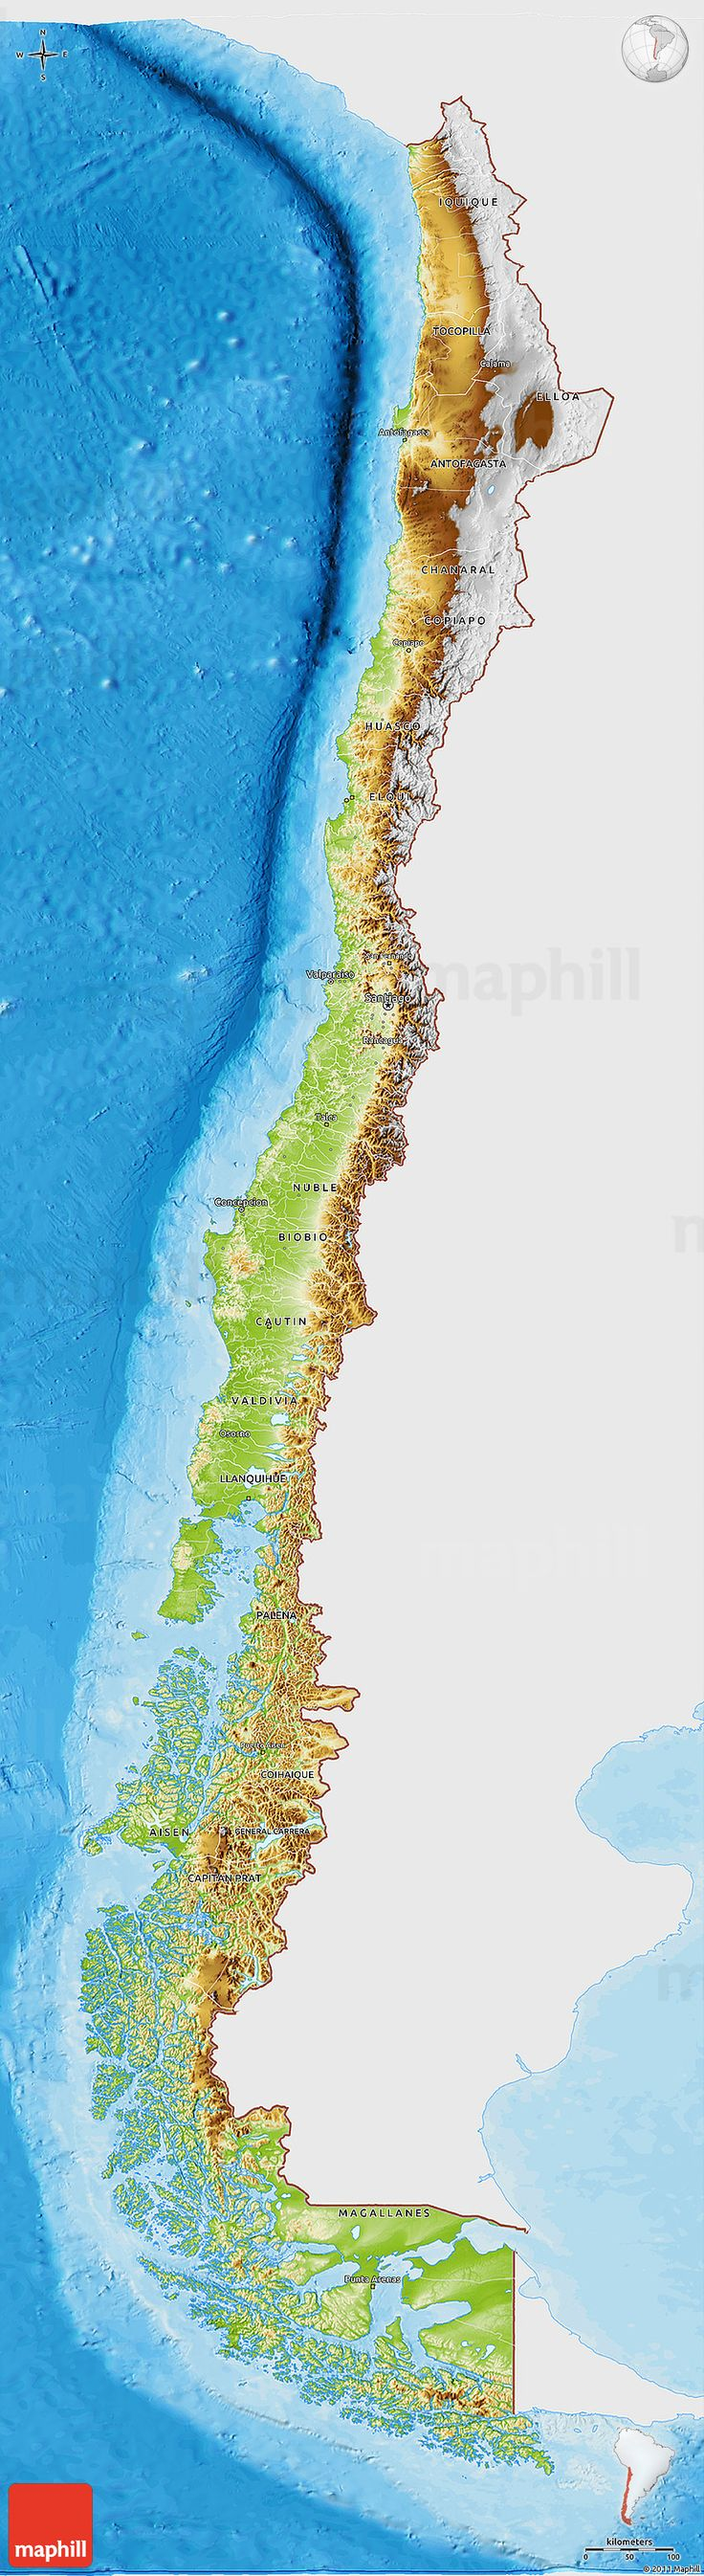 Best Images About Maps  Flags North  South America On - South america map and flags